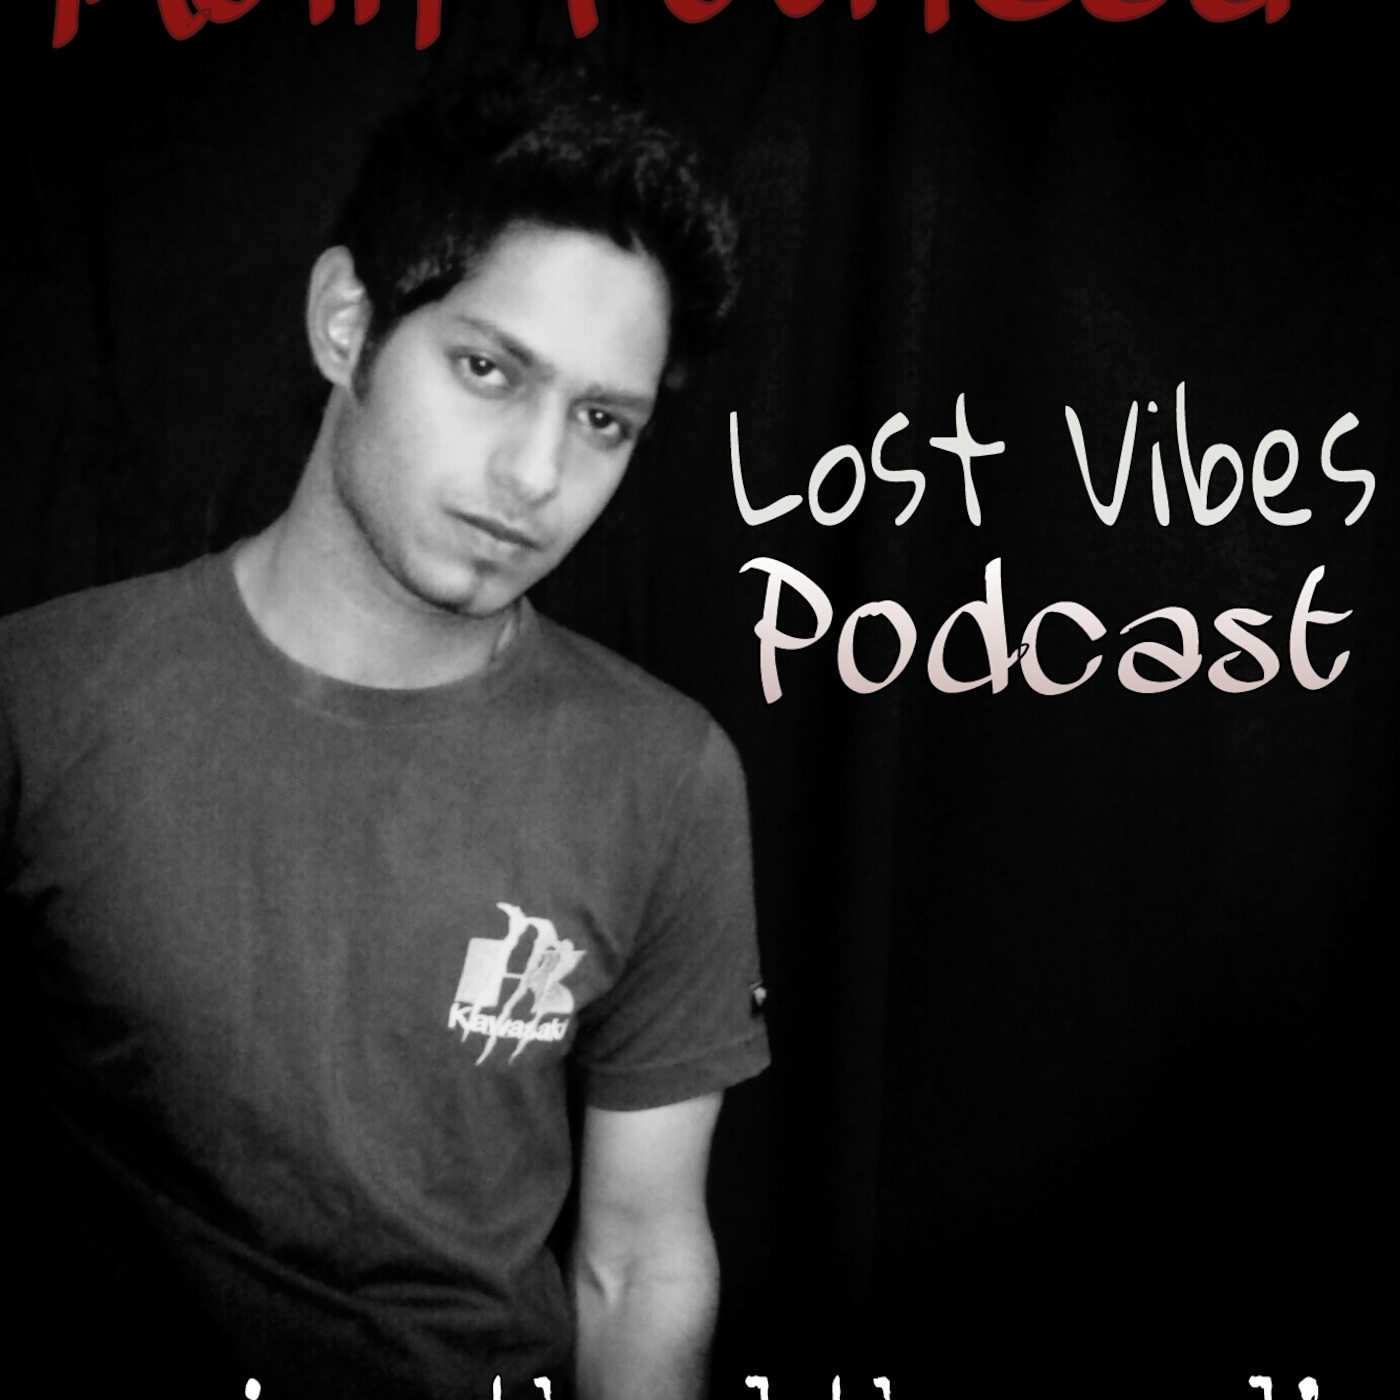 Moin Pothead - Lost Vibes Podcast